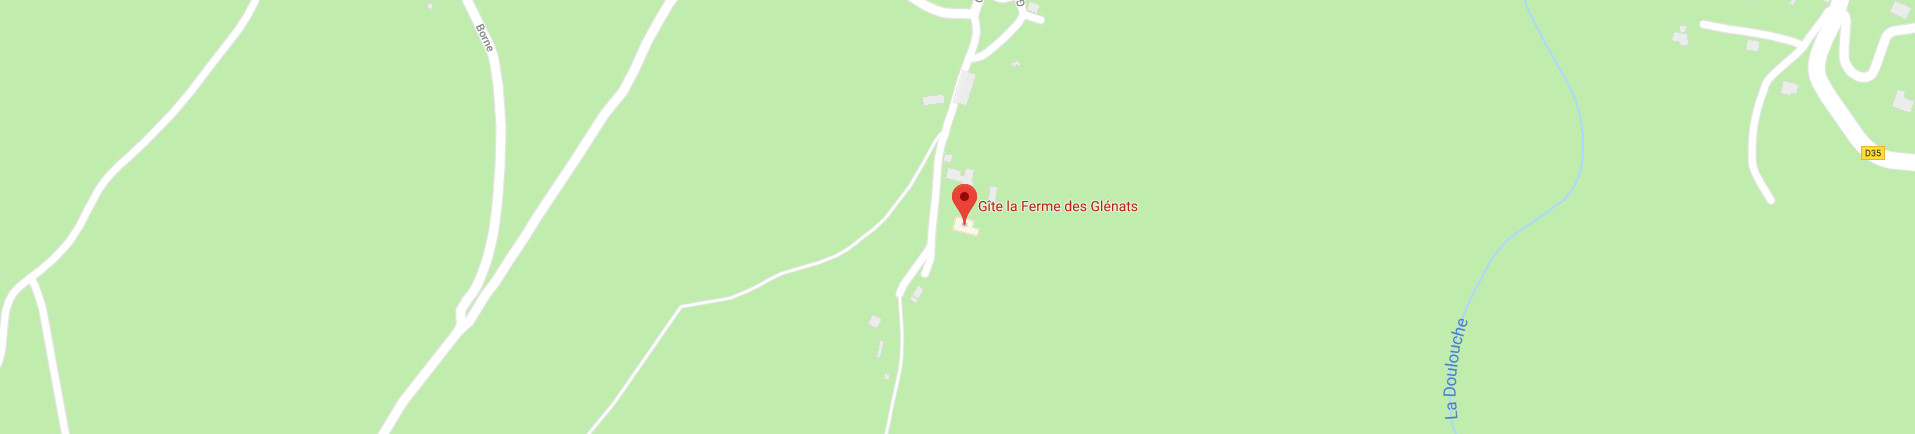 ferme des Glénats holiday rental location map